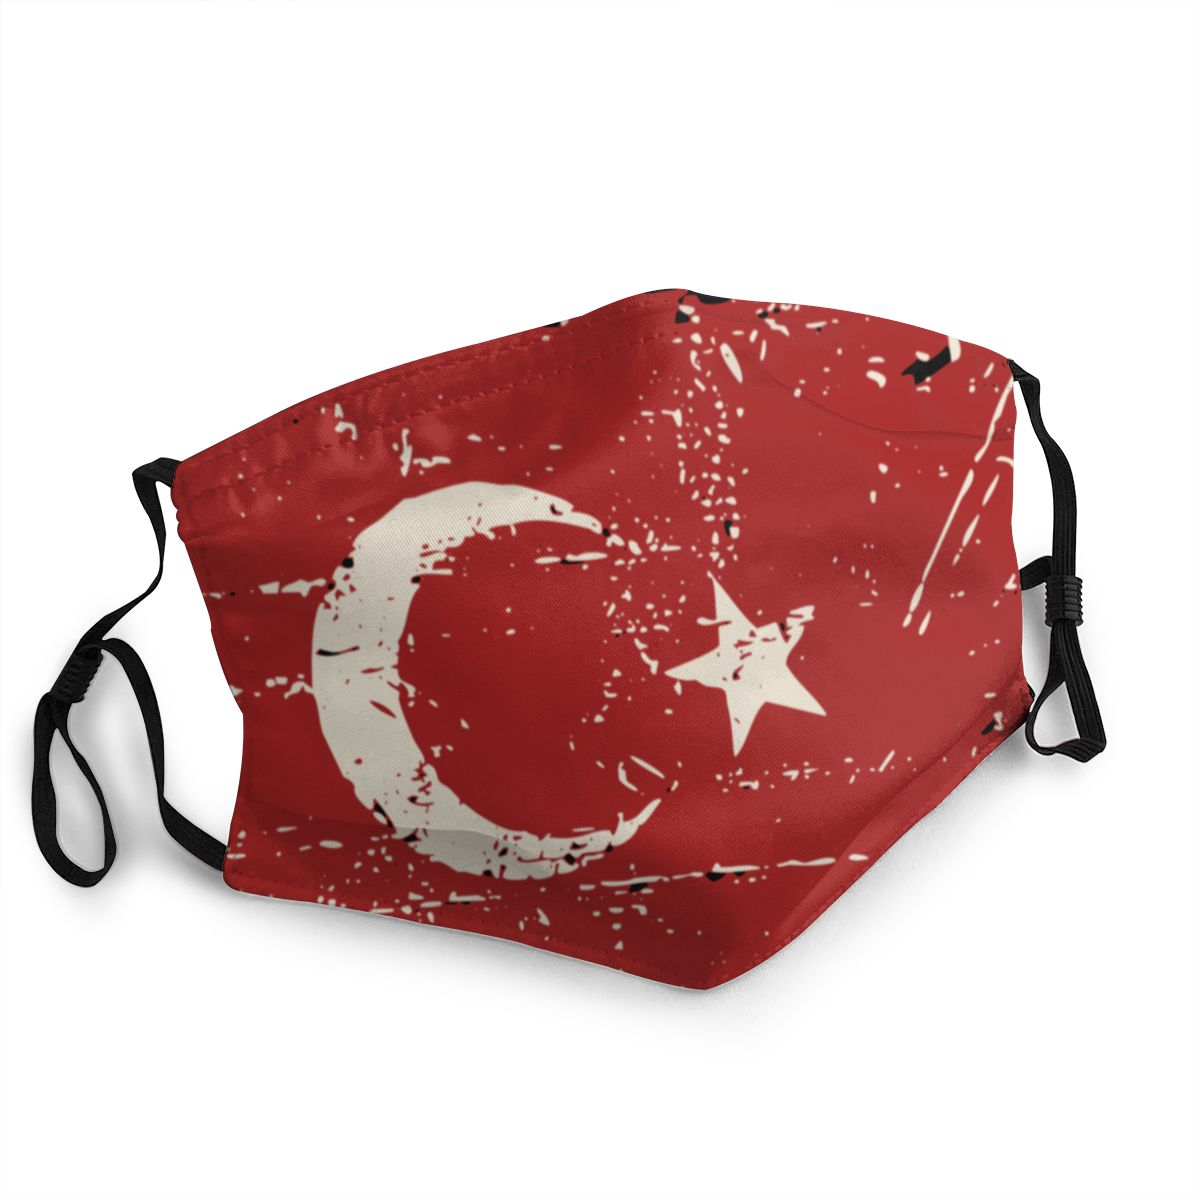 The Republic Of Turkey Flag Reusable Mouth Face Mask Anti Bacterial Dust Protection Cover Respirator